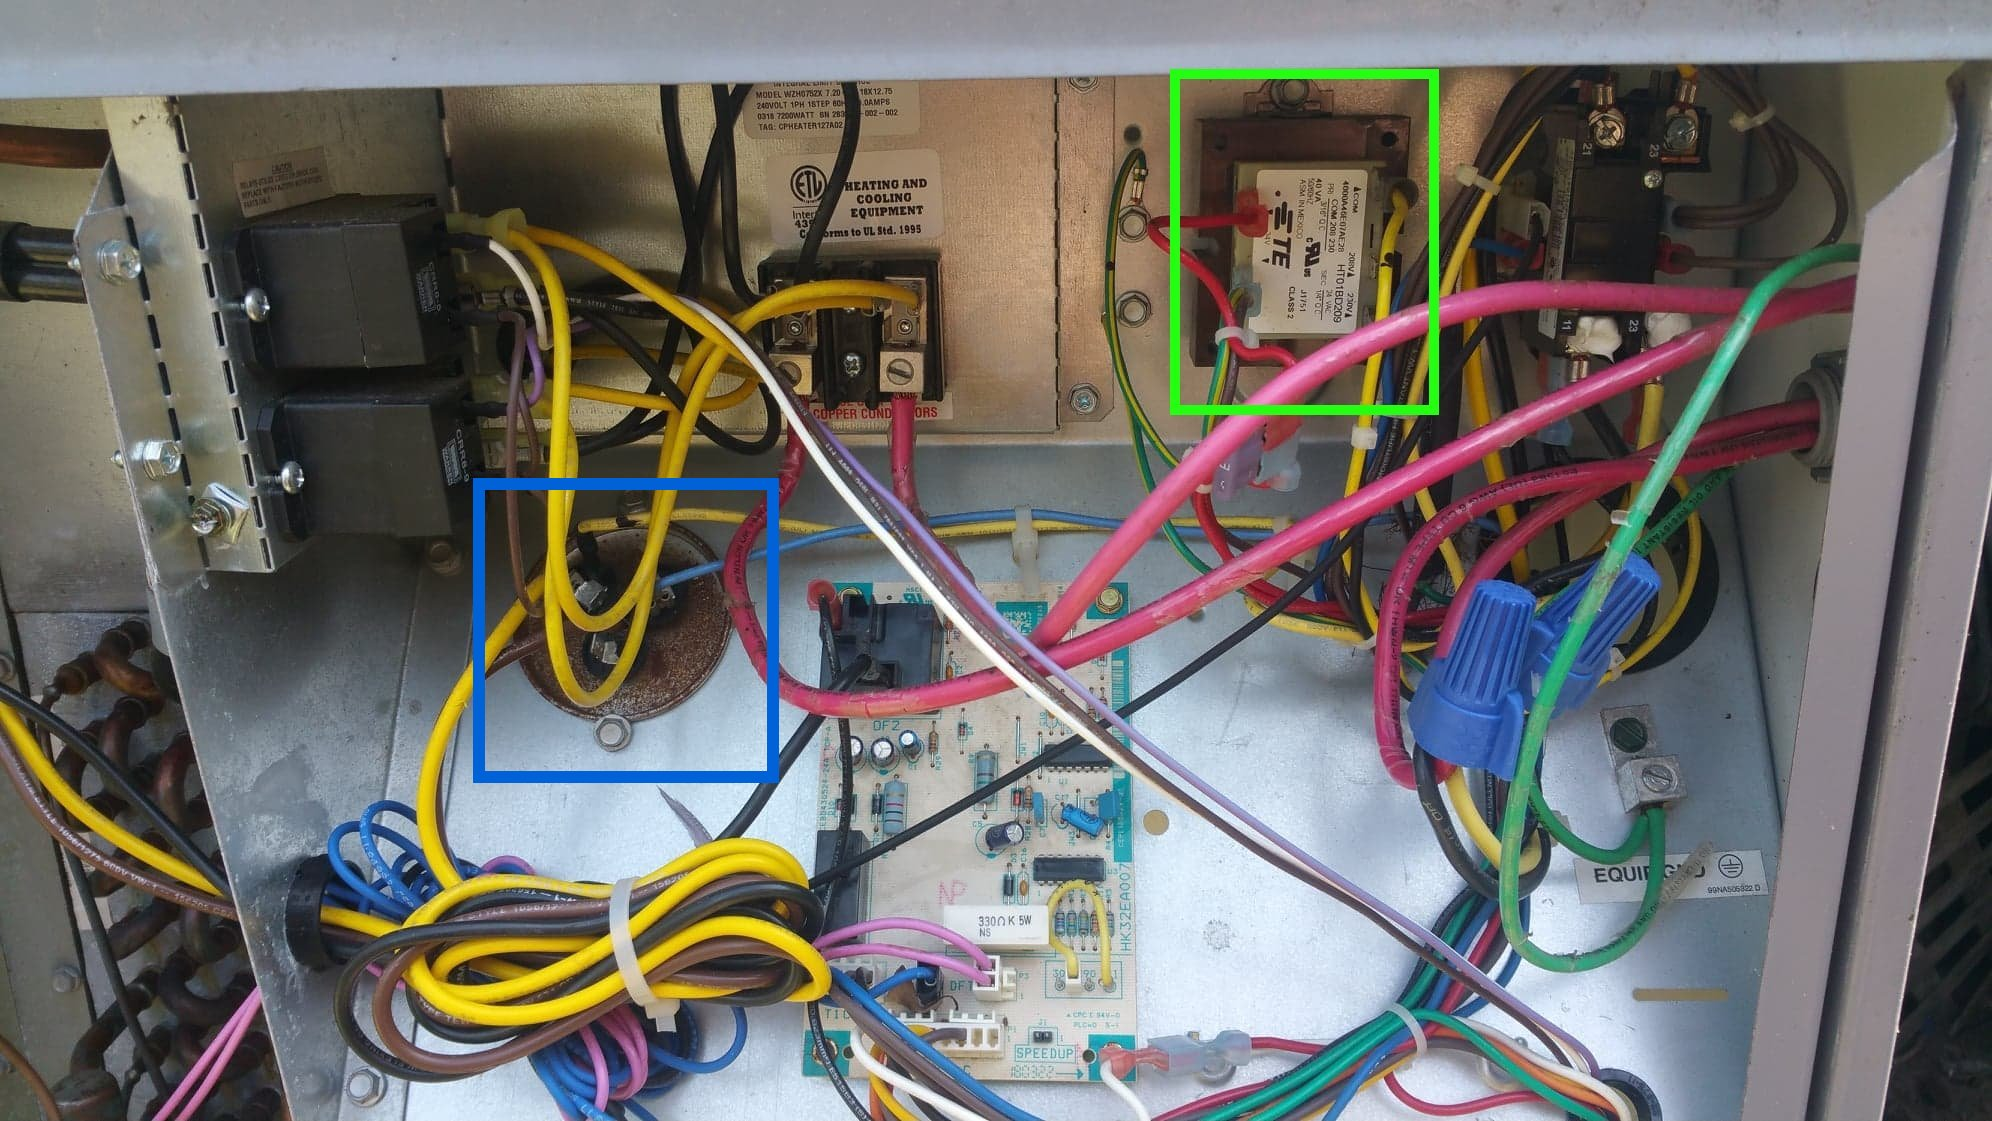 AC Unit WJH44800KTP0A1 Blows Air, Neither Hot Nor Cold-ac-2-.jpg